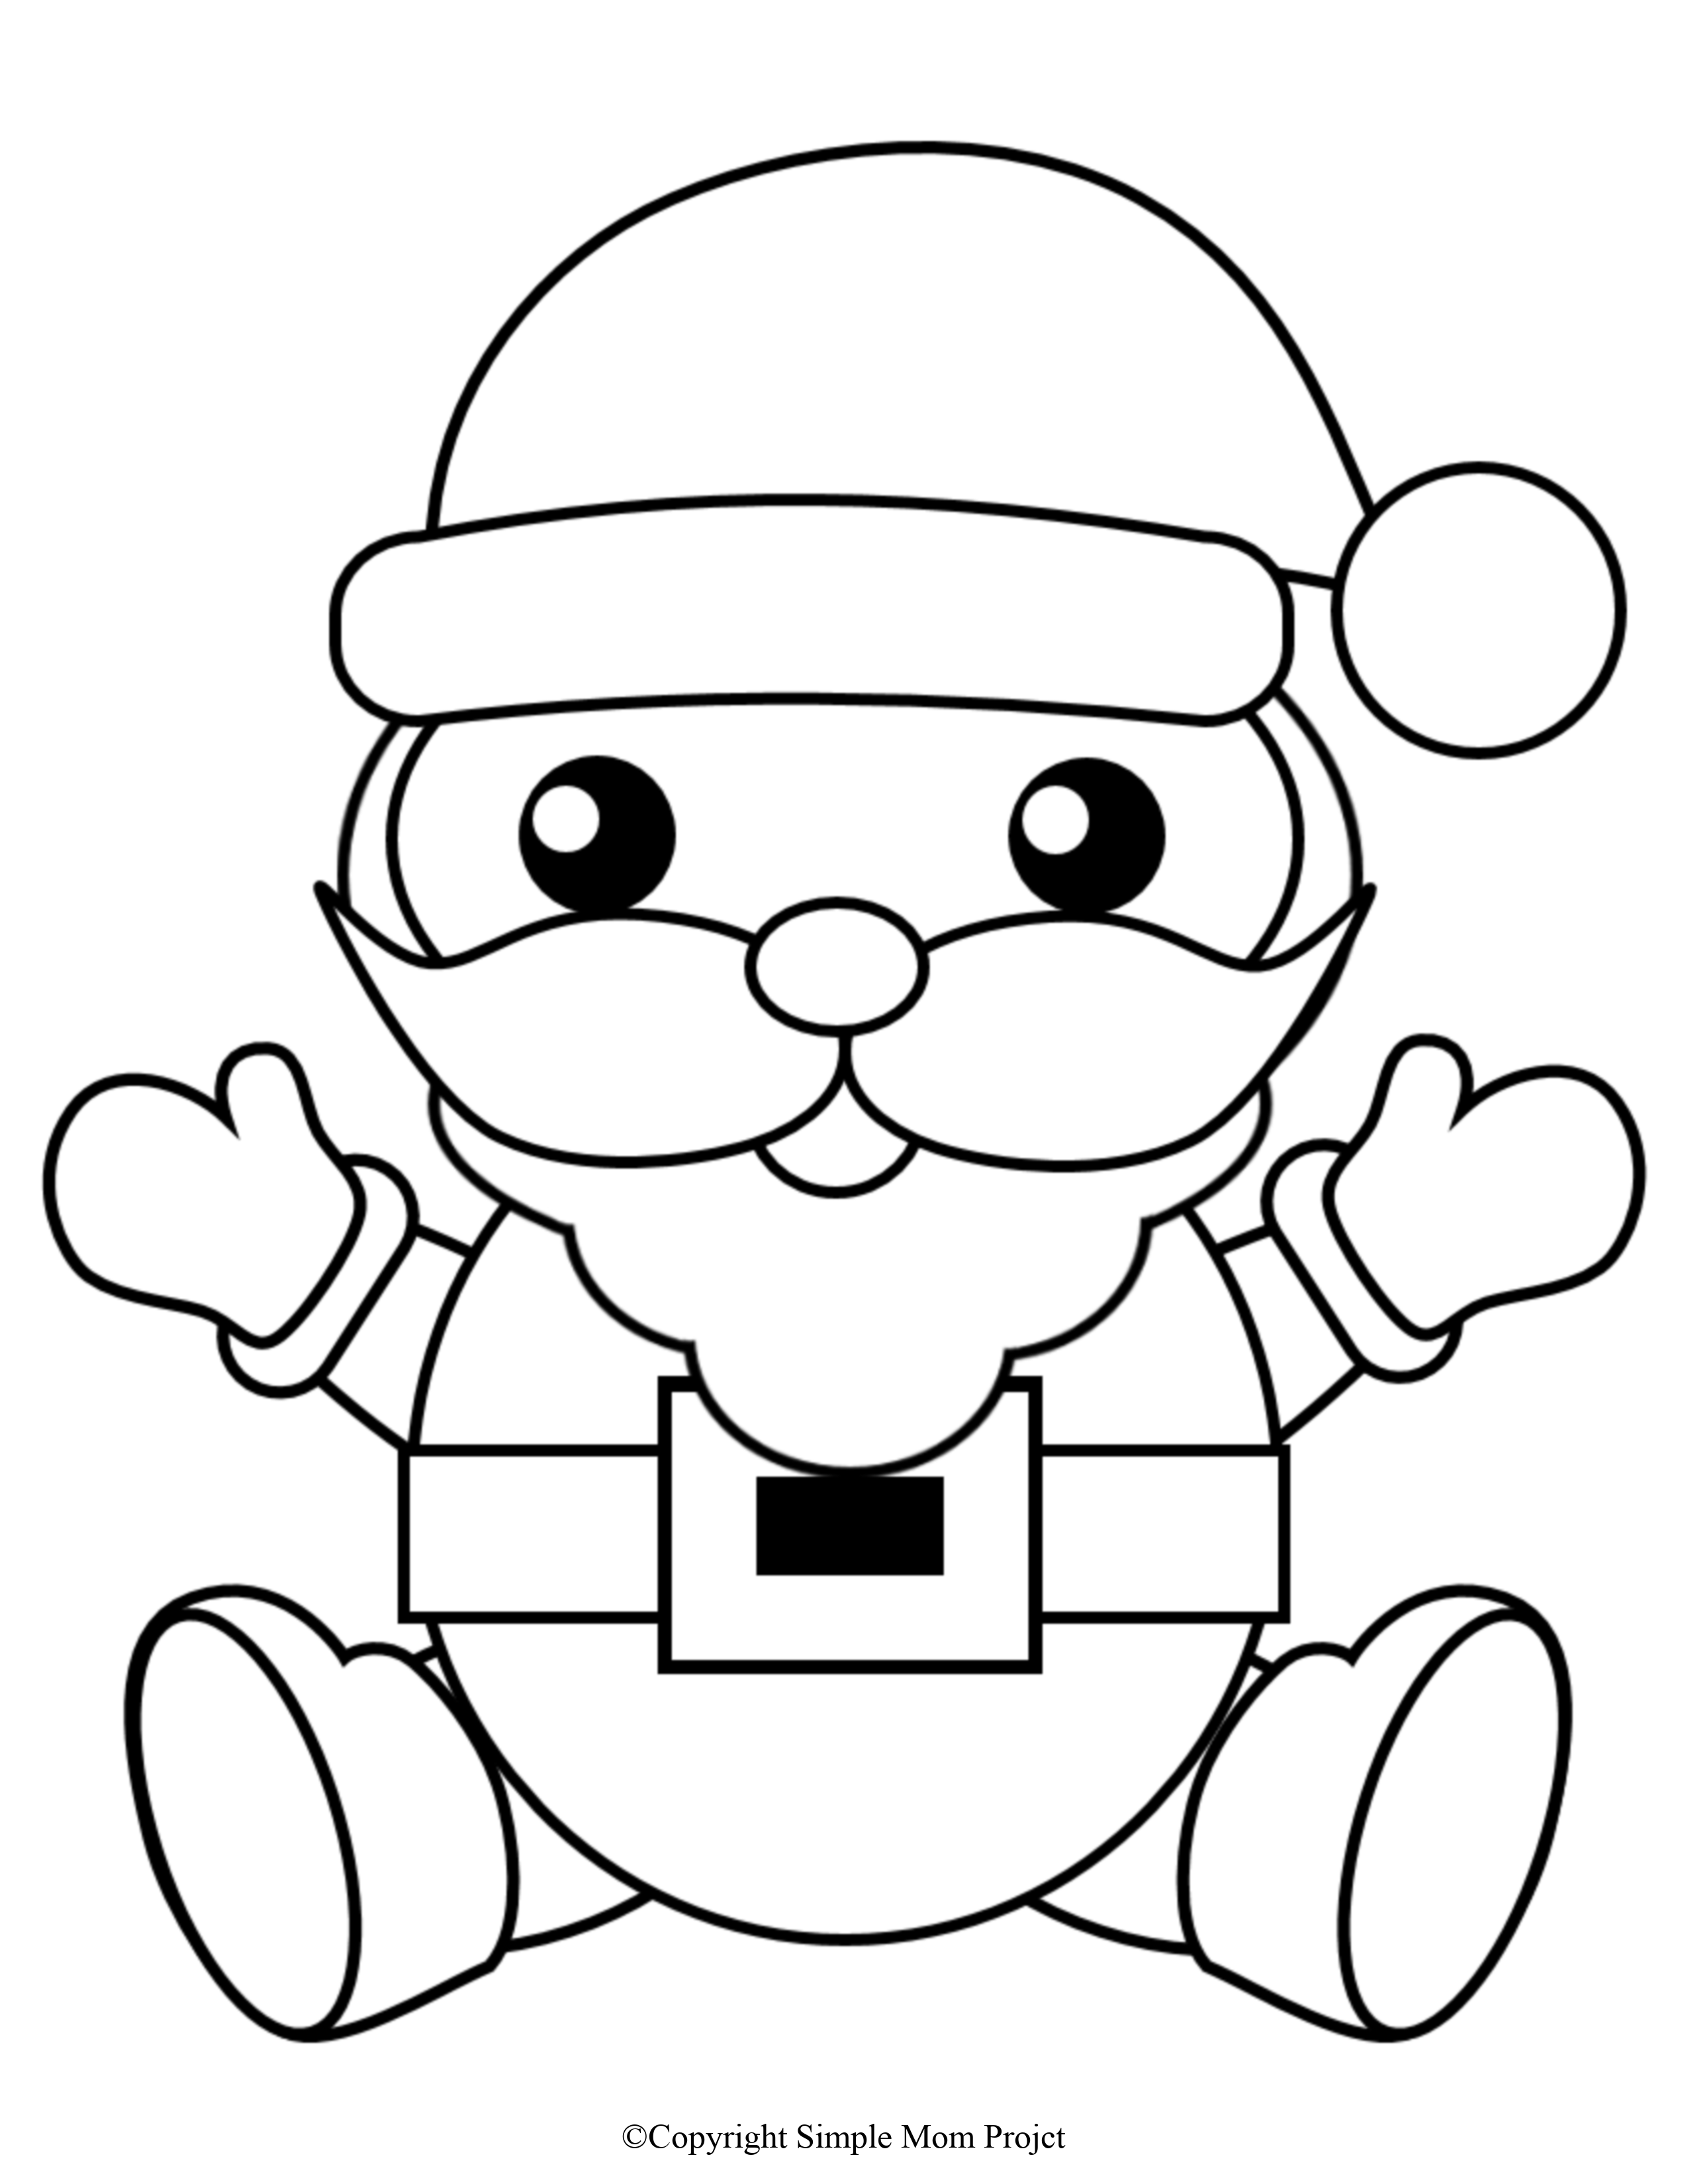 Click Now To Print These Cute Free Christmas Coloring